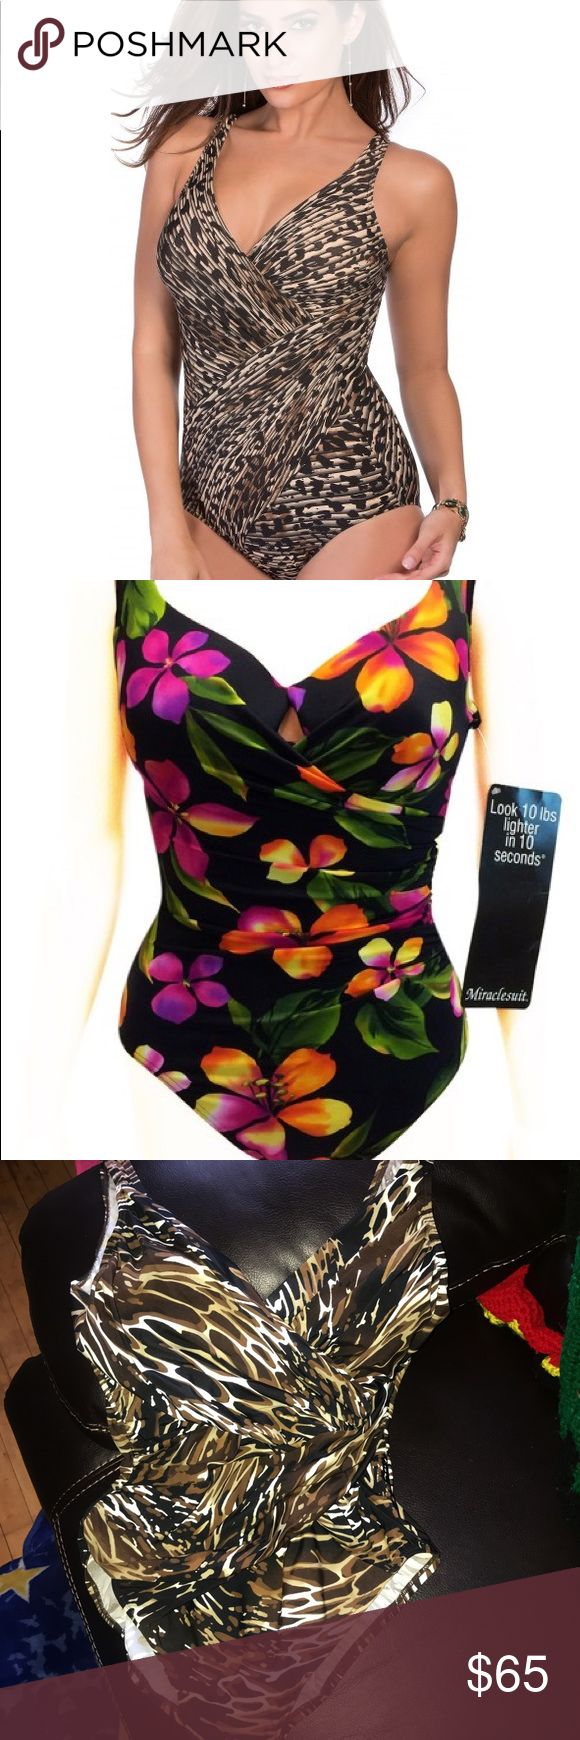 Sexy & Slimming Animal Print Swimsuit 👙🔆 New without tags; fantastic condition, designed to flatter midsection, with cross-cross feature. Offers welcome 🤗 Kirkland by Miraclesuit. Miraclesuit Swim One Pieces